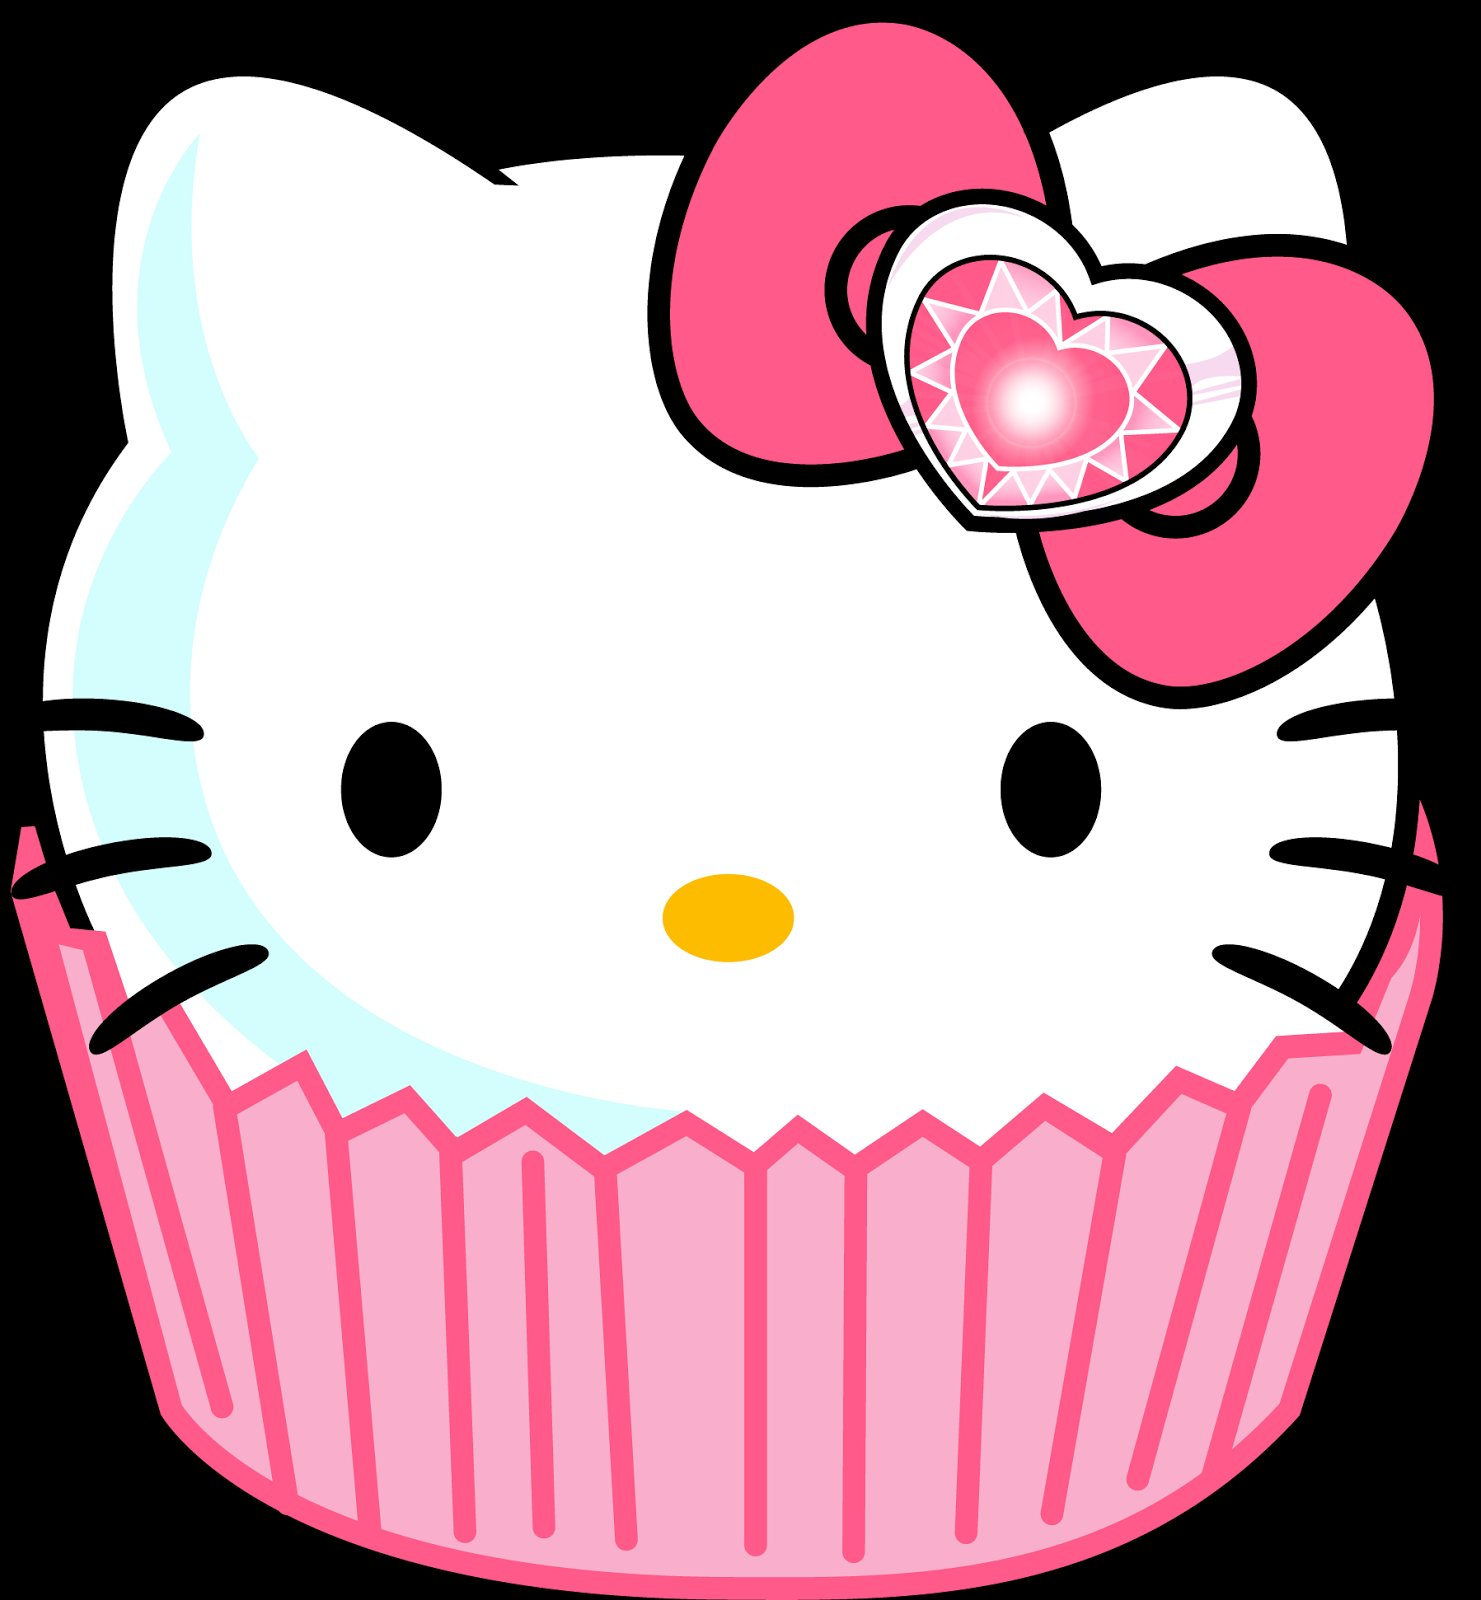 Popular Wallpaper Hello Kitty Cupcake - 497b444903e57864a9d0a0f78f1cfa3d  Perfect Image Reference_9333.jpg